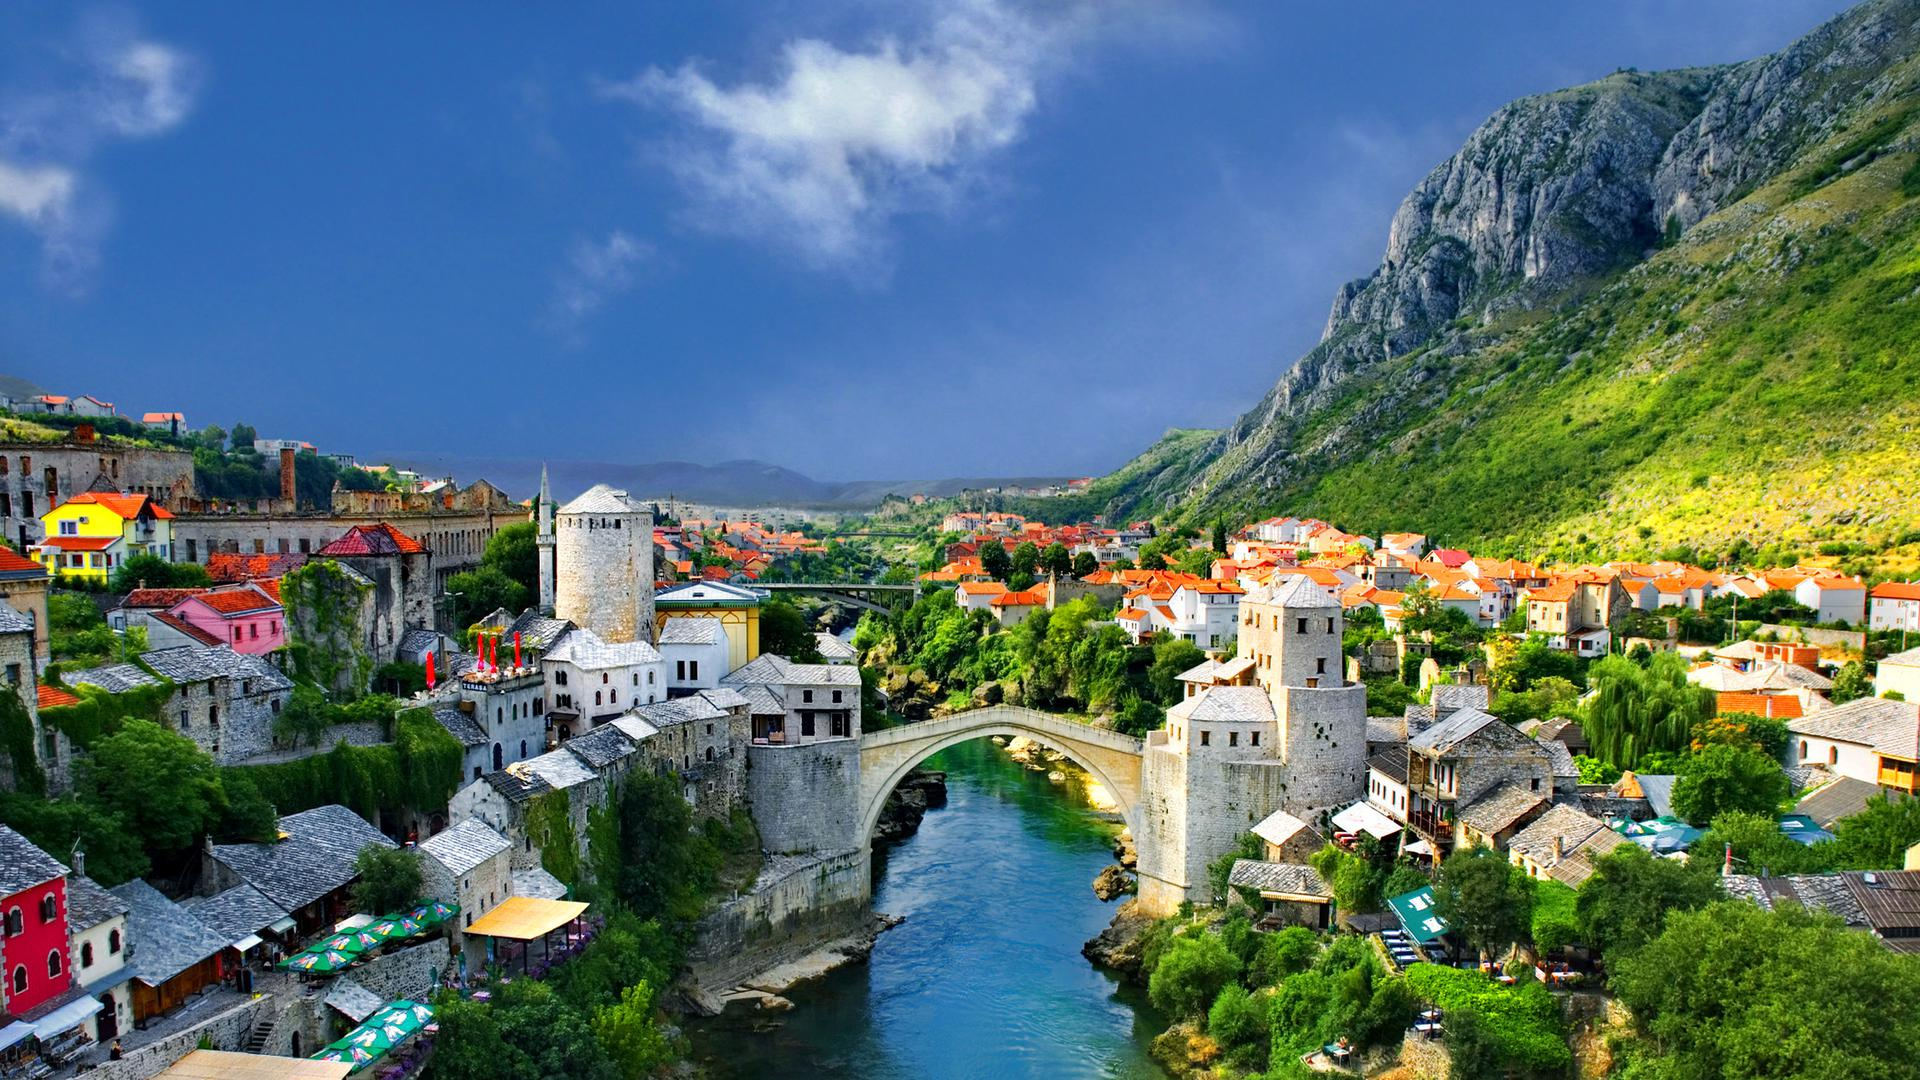 Fantastic town in a river valley HQ WALLPAPER - (#106110)